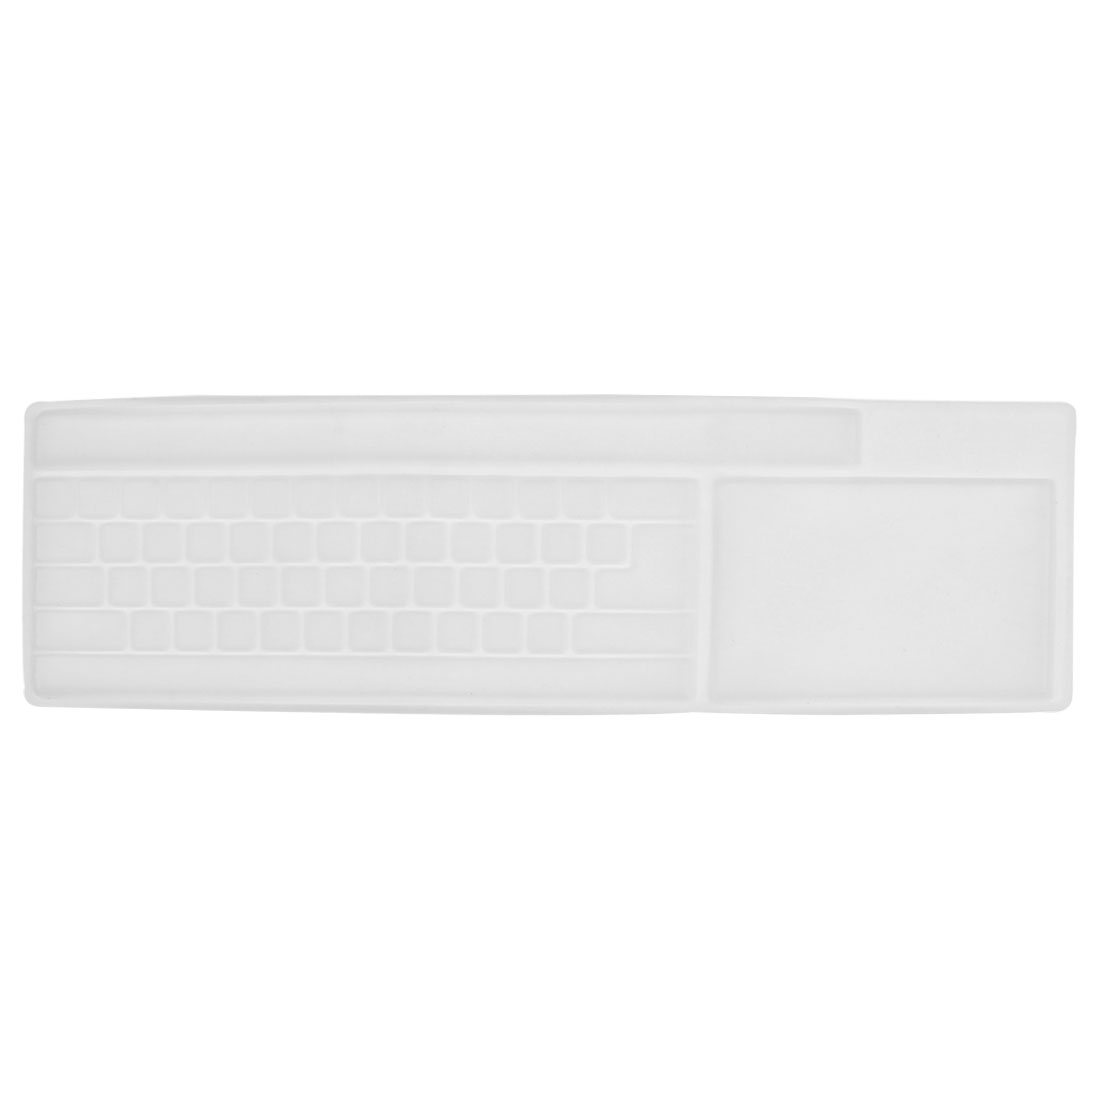 Clear White Silicone Keybord Film Protector Guard for PC Desktop Computer